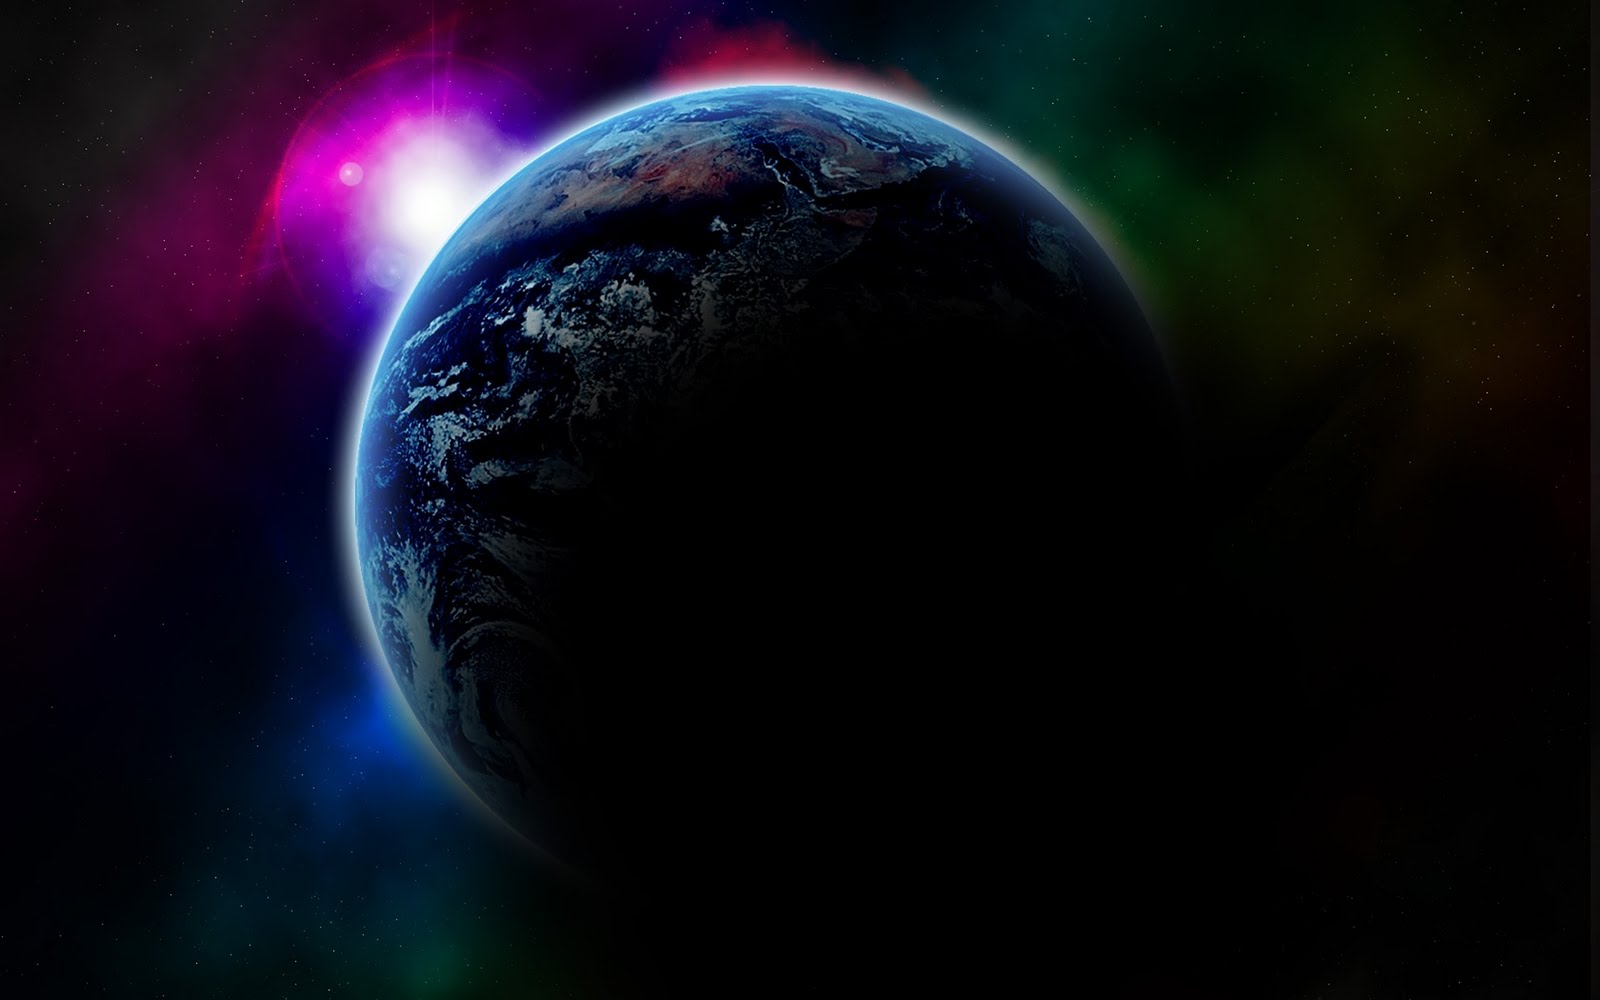 3d Space Background Wallpaper: Love U Wallpapers: 3d Space Background